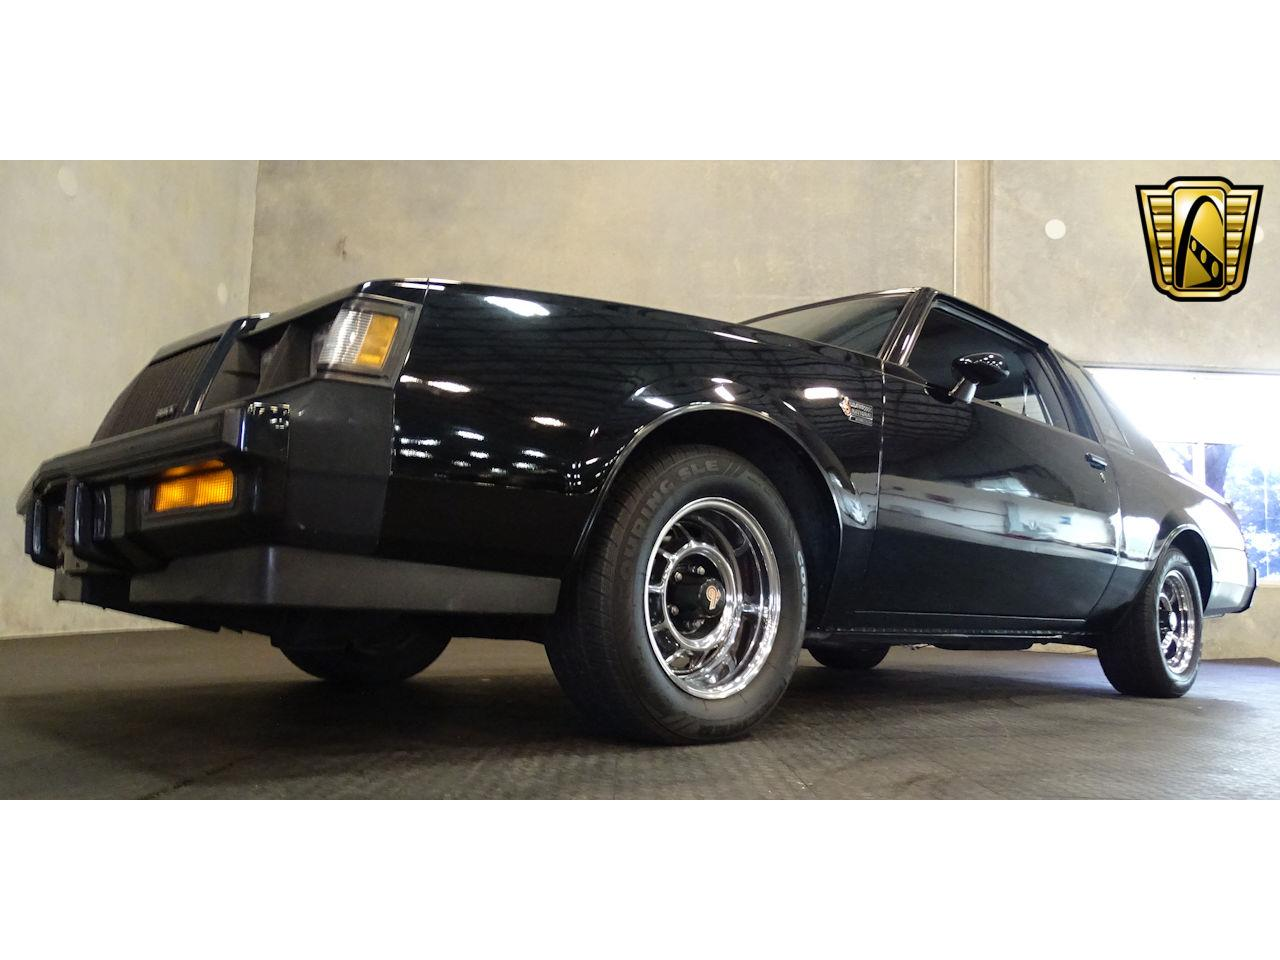 Large Picture of 1987 Buick Regal located in Florida - $28,995.00 Offered by Gateway Classic Cars - Tampa - M4V5